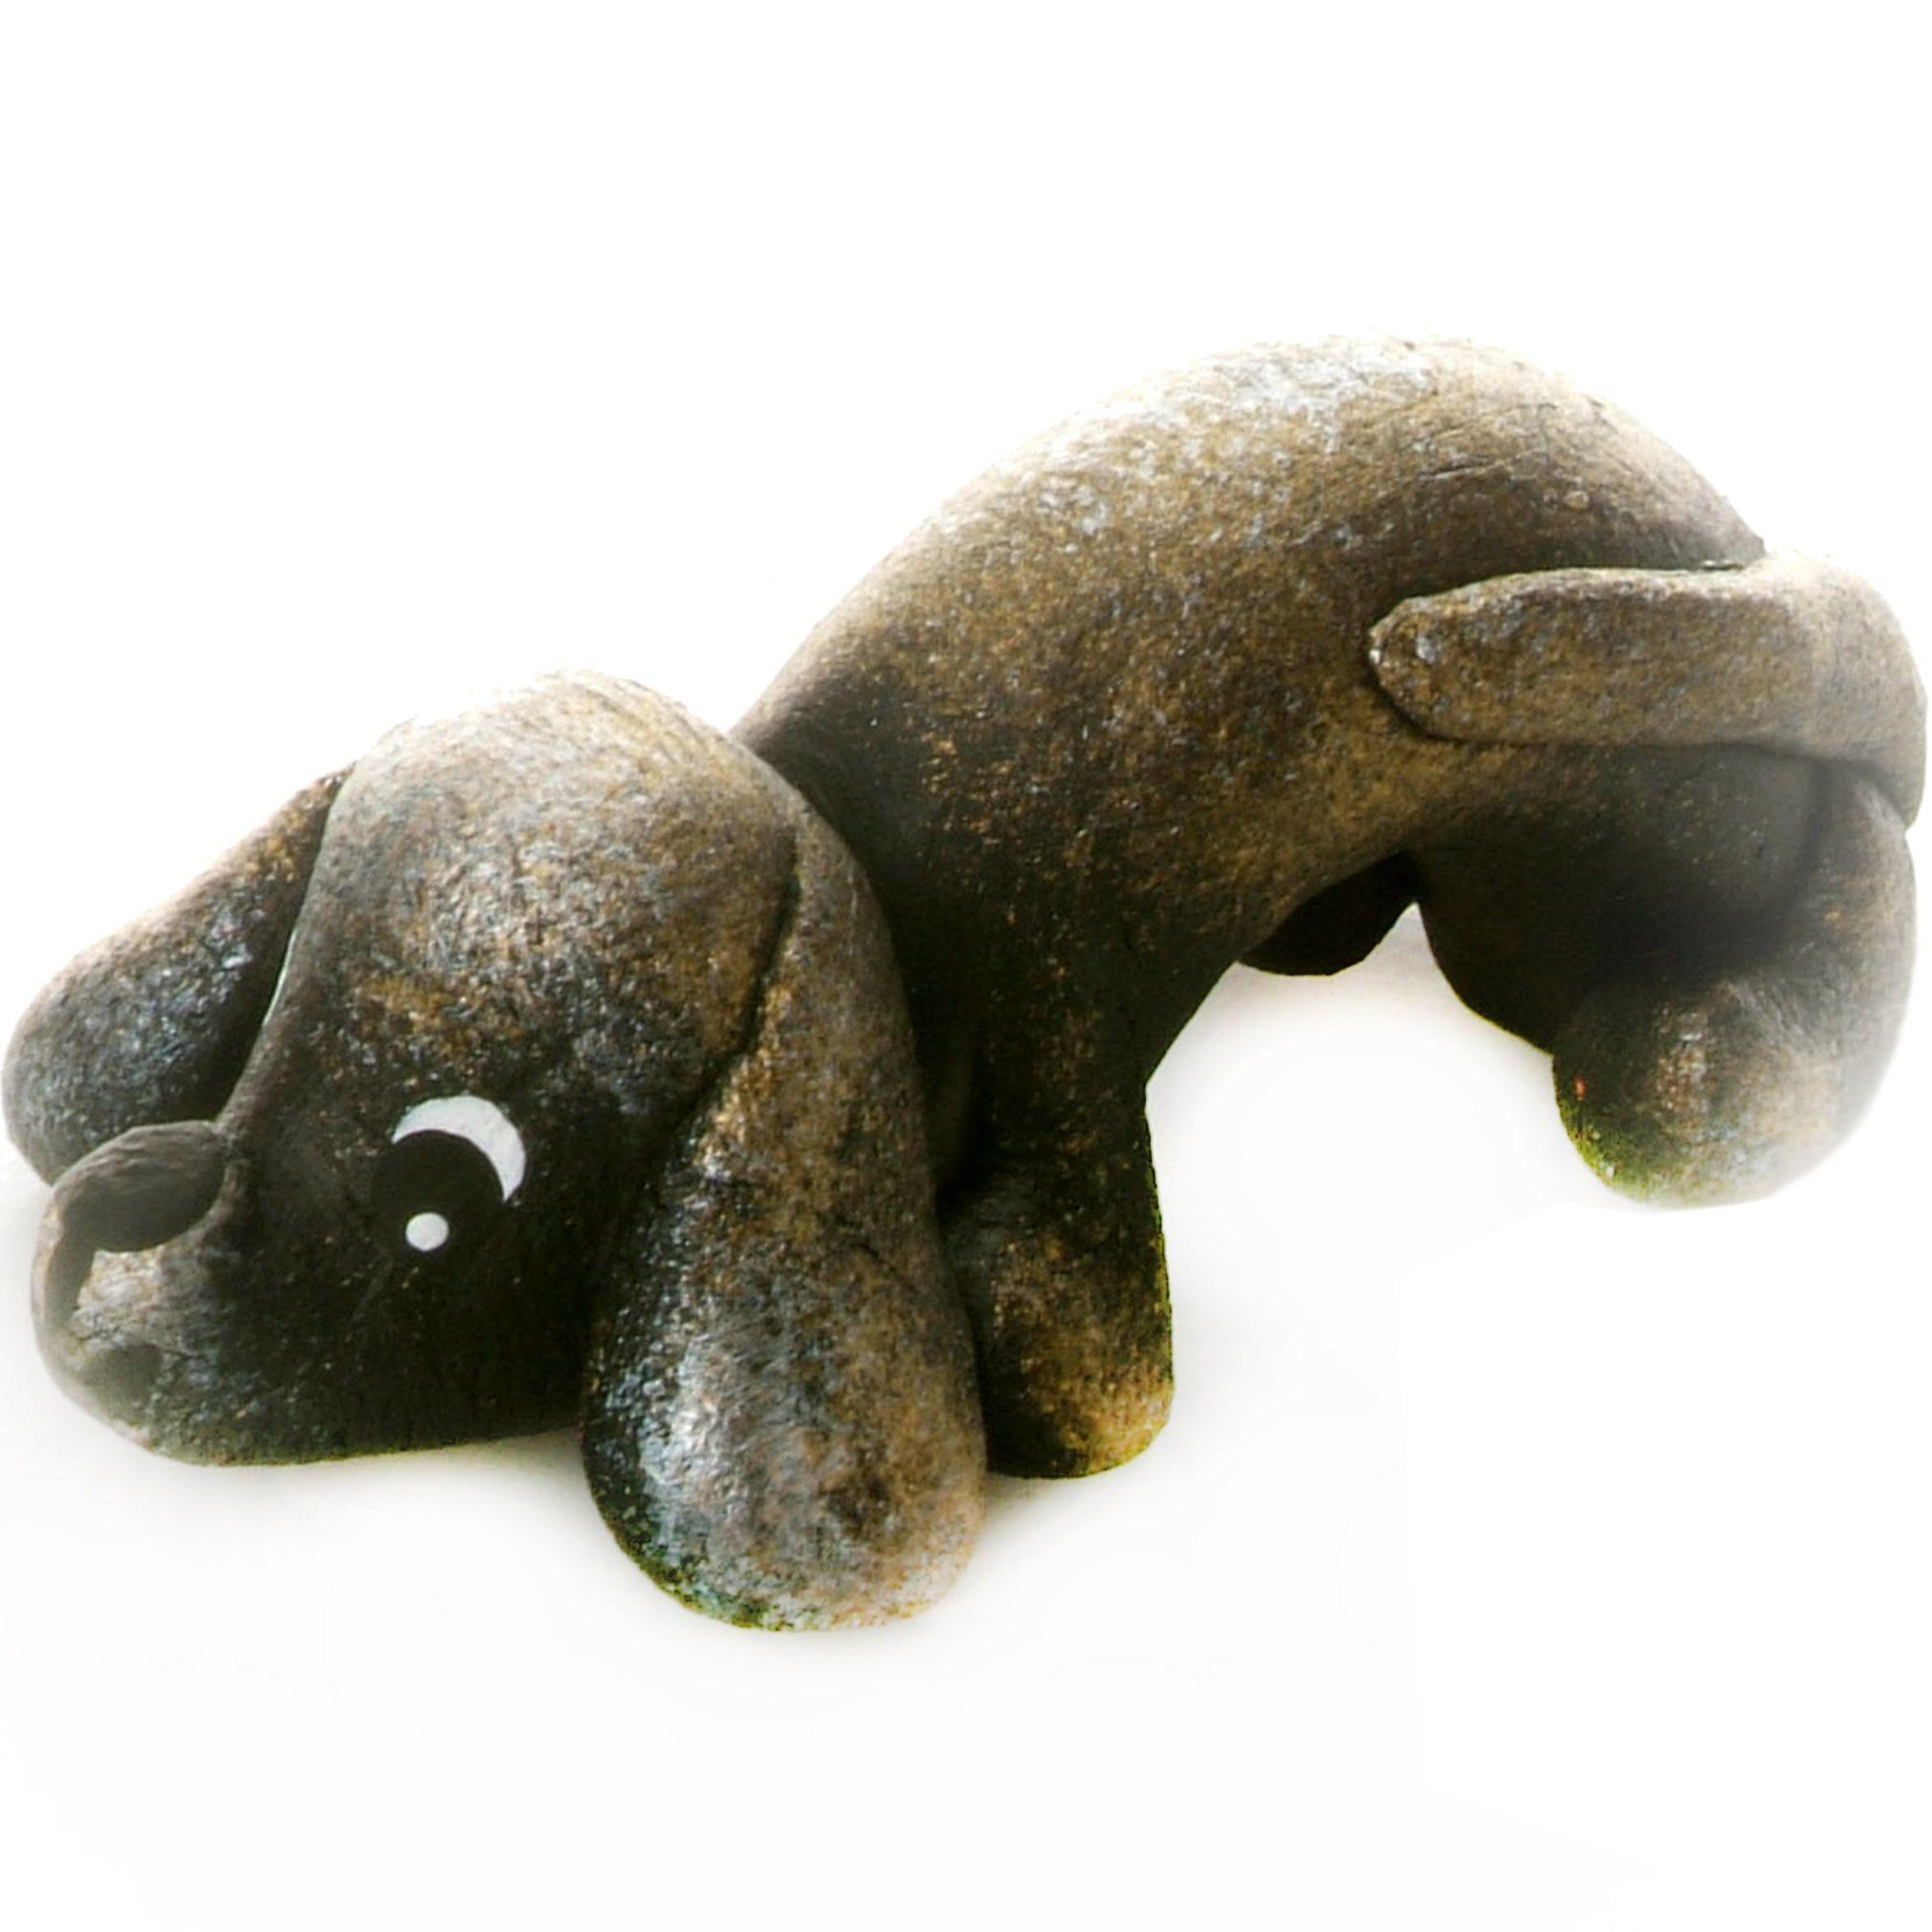 Pet in a Box | Ceramic Animal Gift for Kids | Pewter Dachshound